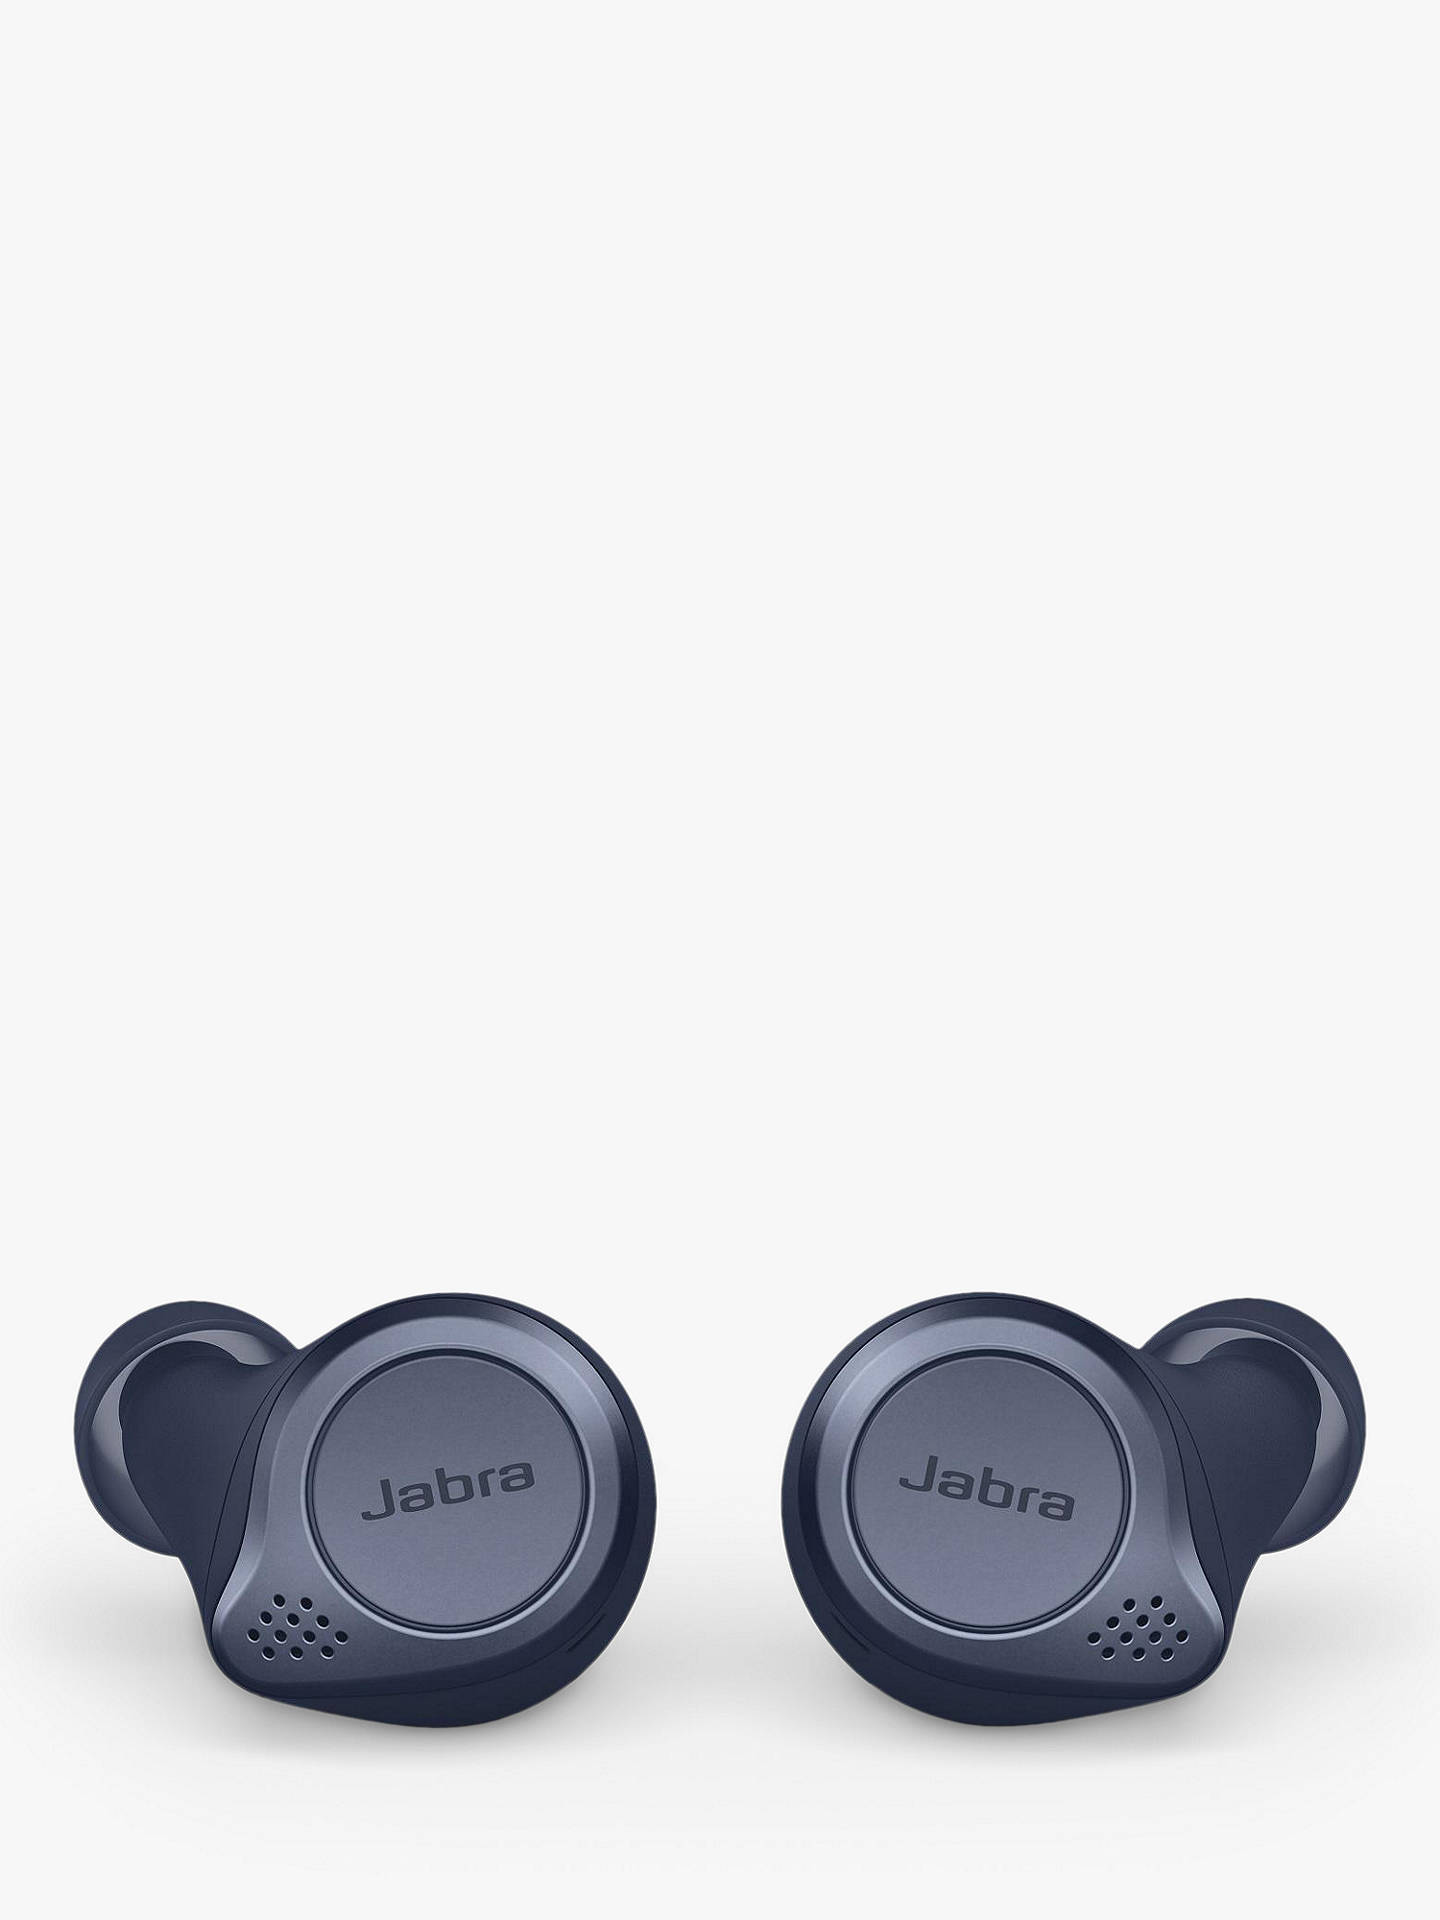 Buy Jabra Elite Active 75t True Wireless Bluetooth Active Noise Cancelling Sweat & Weather-Resistant In-Ear Headphones with Mic/Remote, Navy Online at johnlewis.com